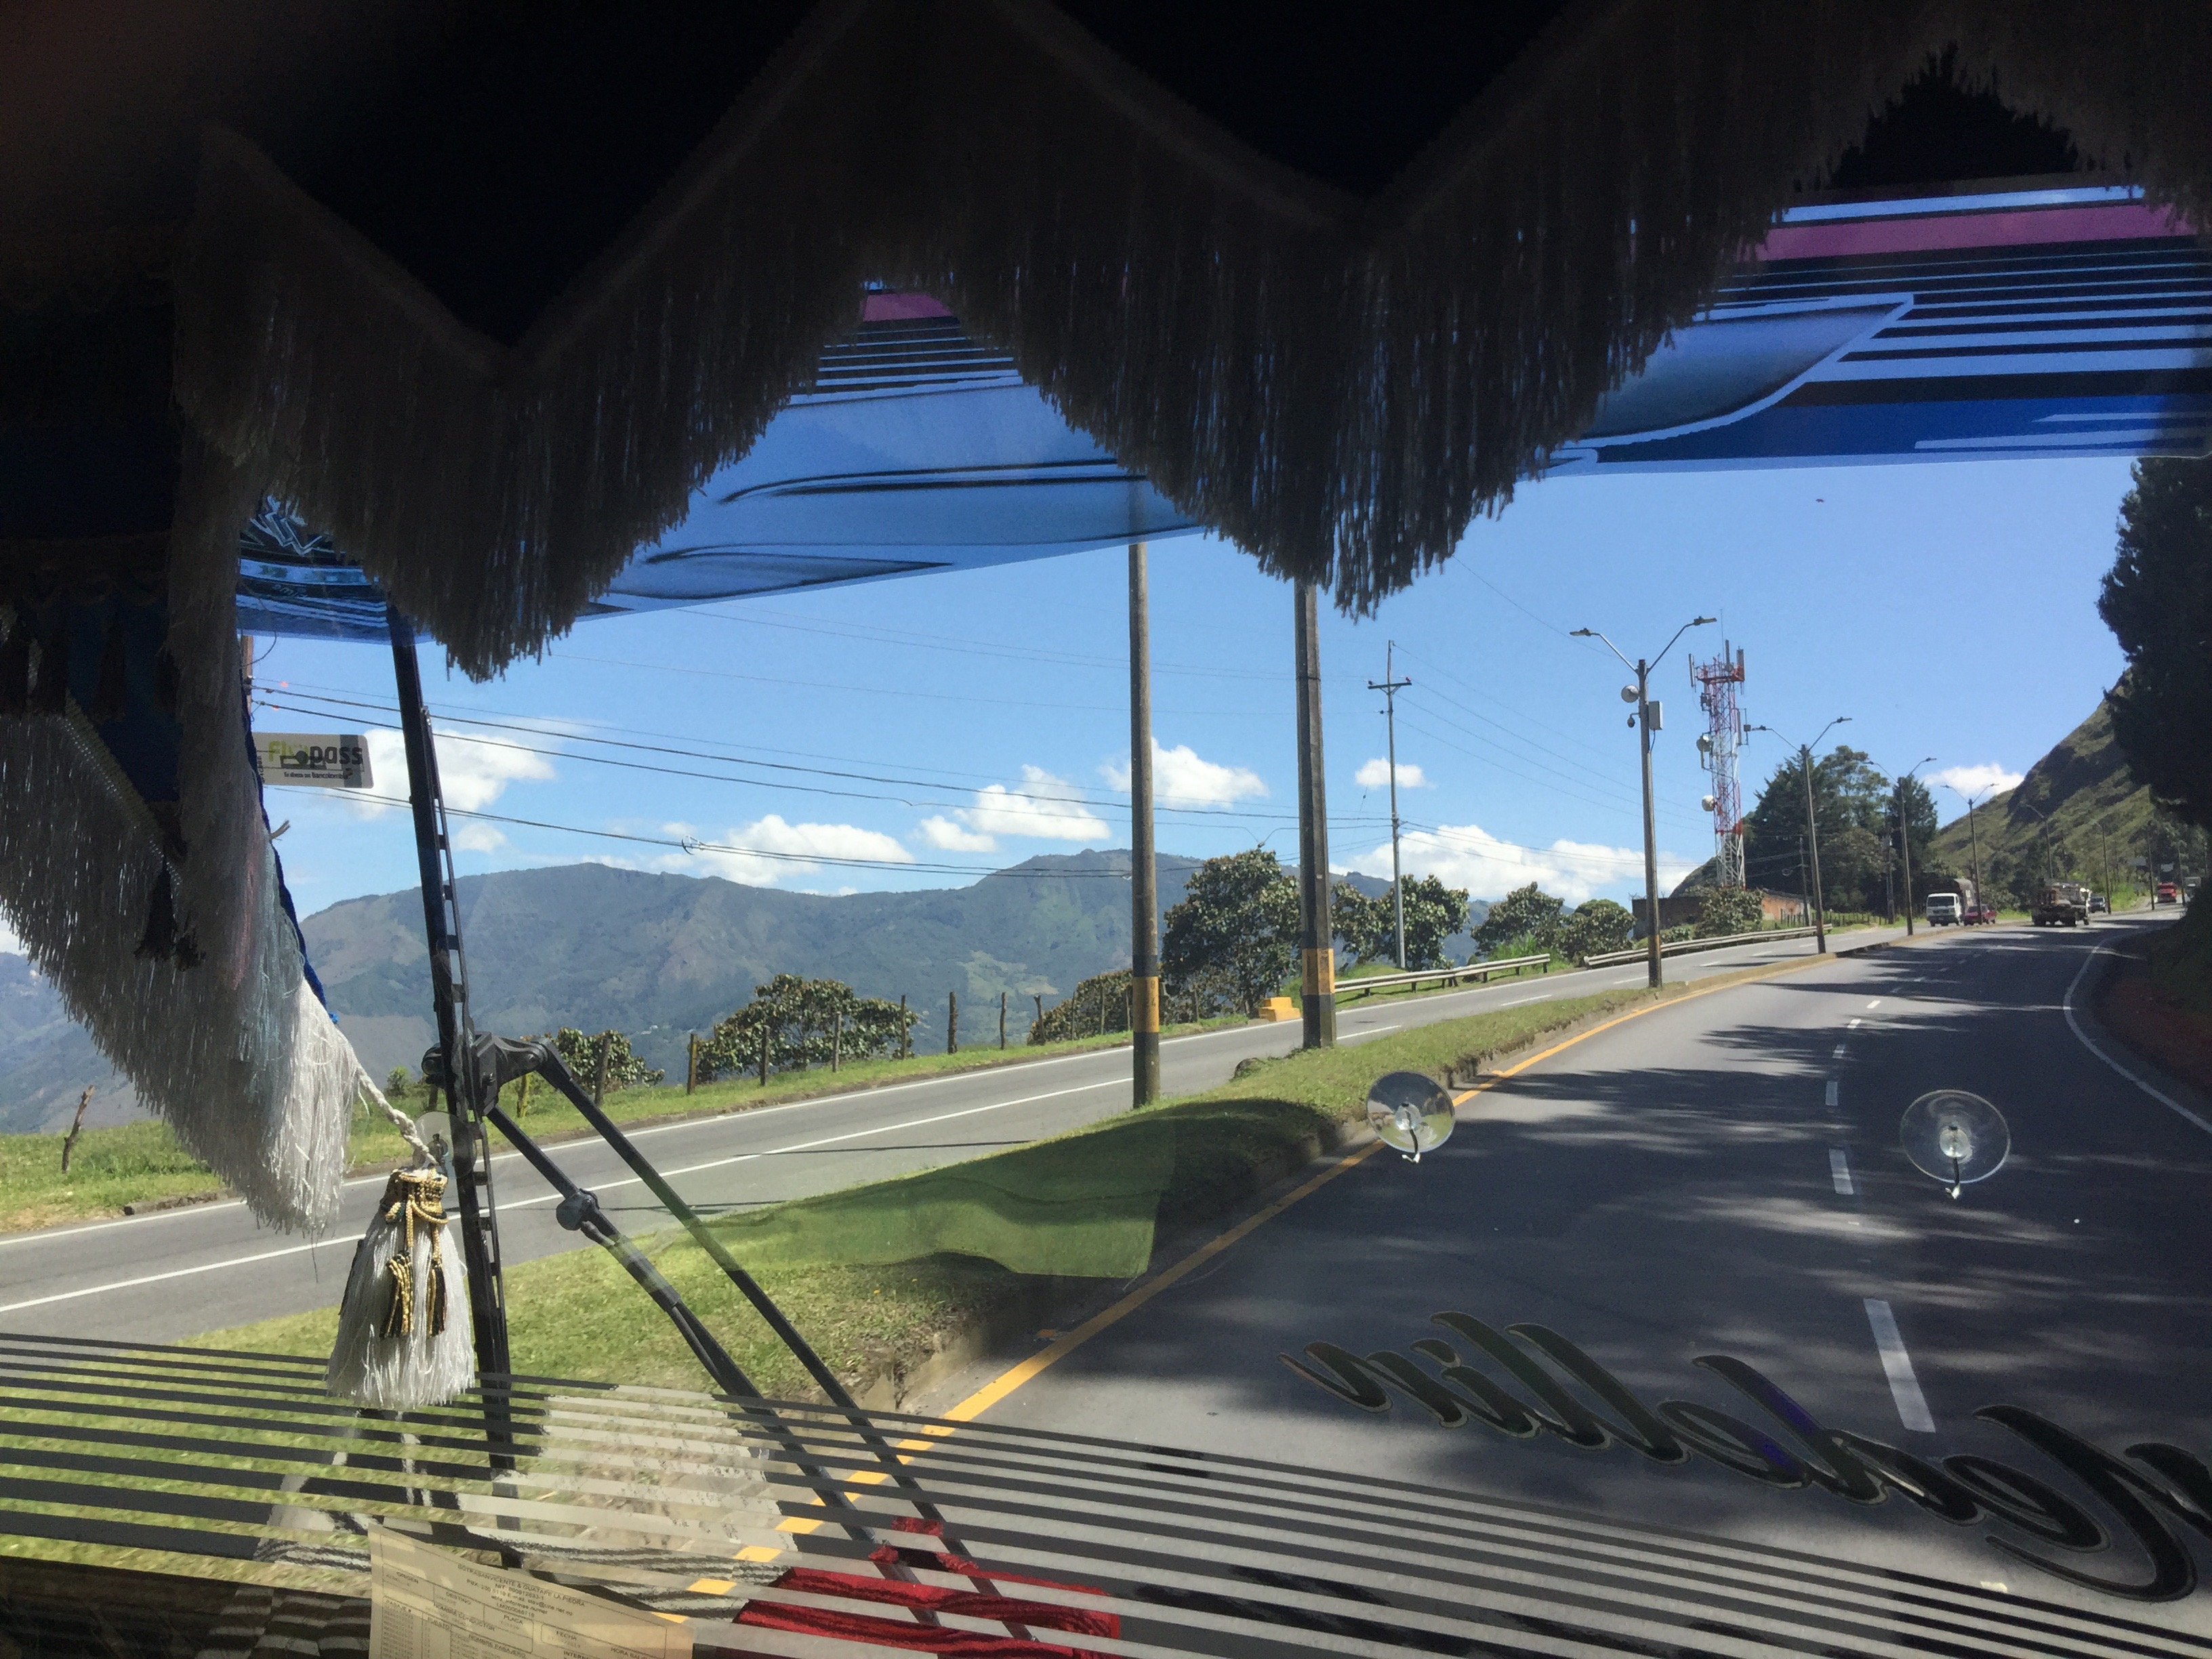 On the way to guatapé